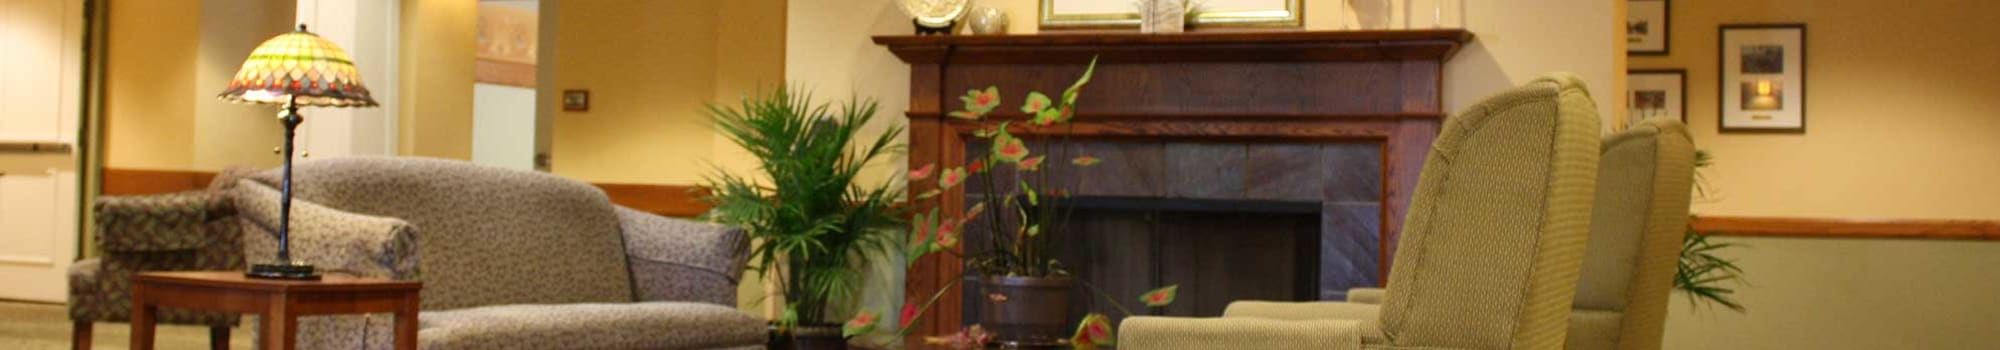 Senior living options in Green Bay, WI